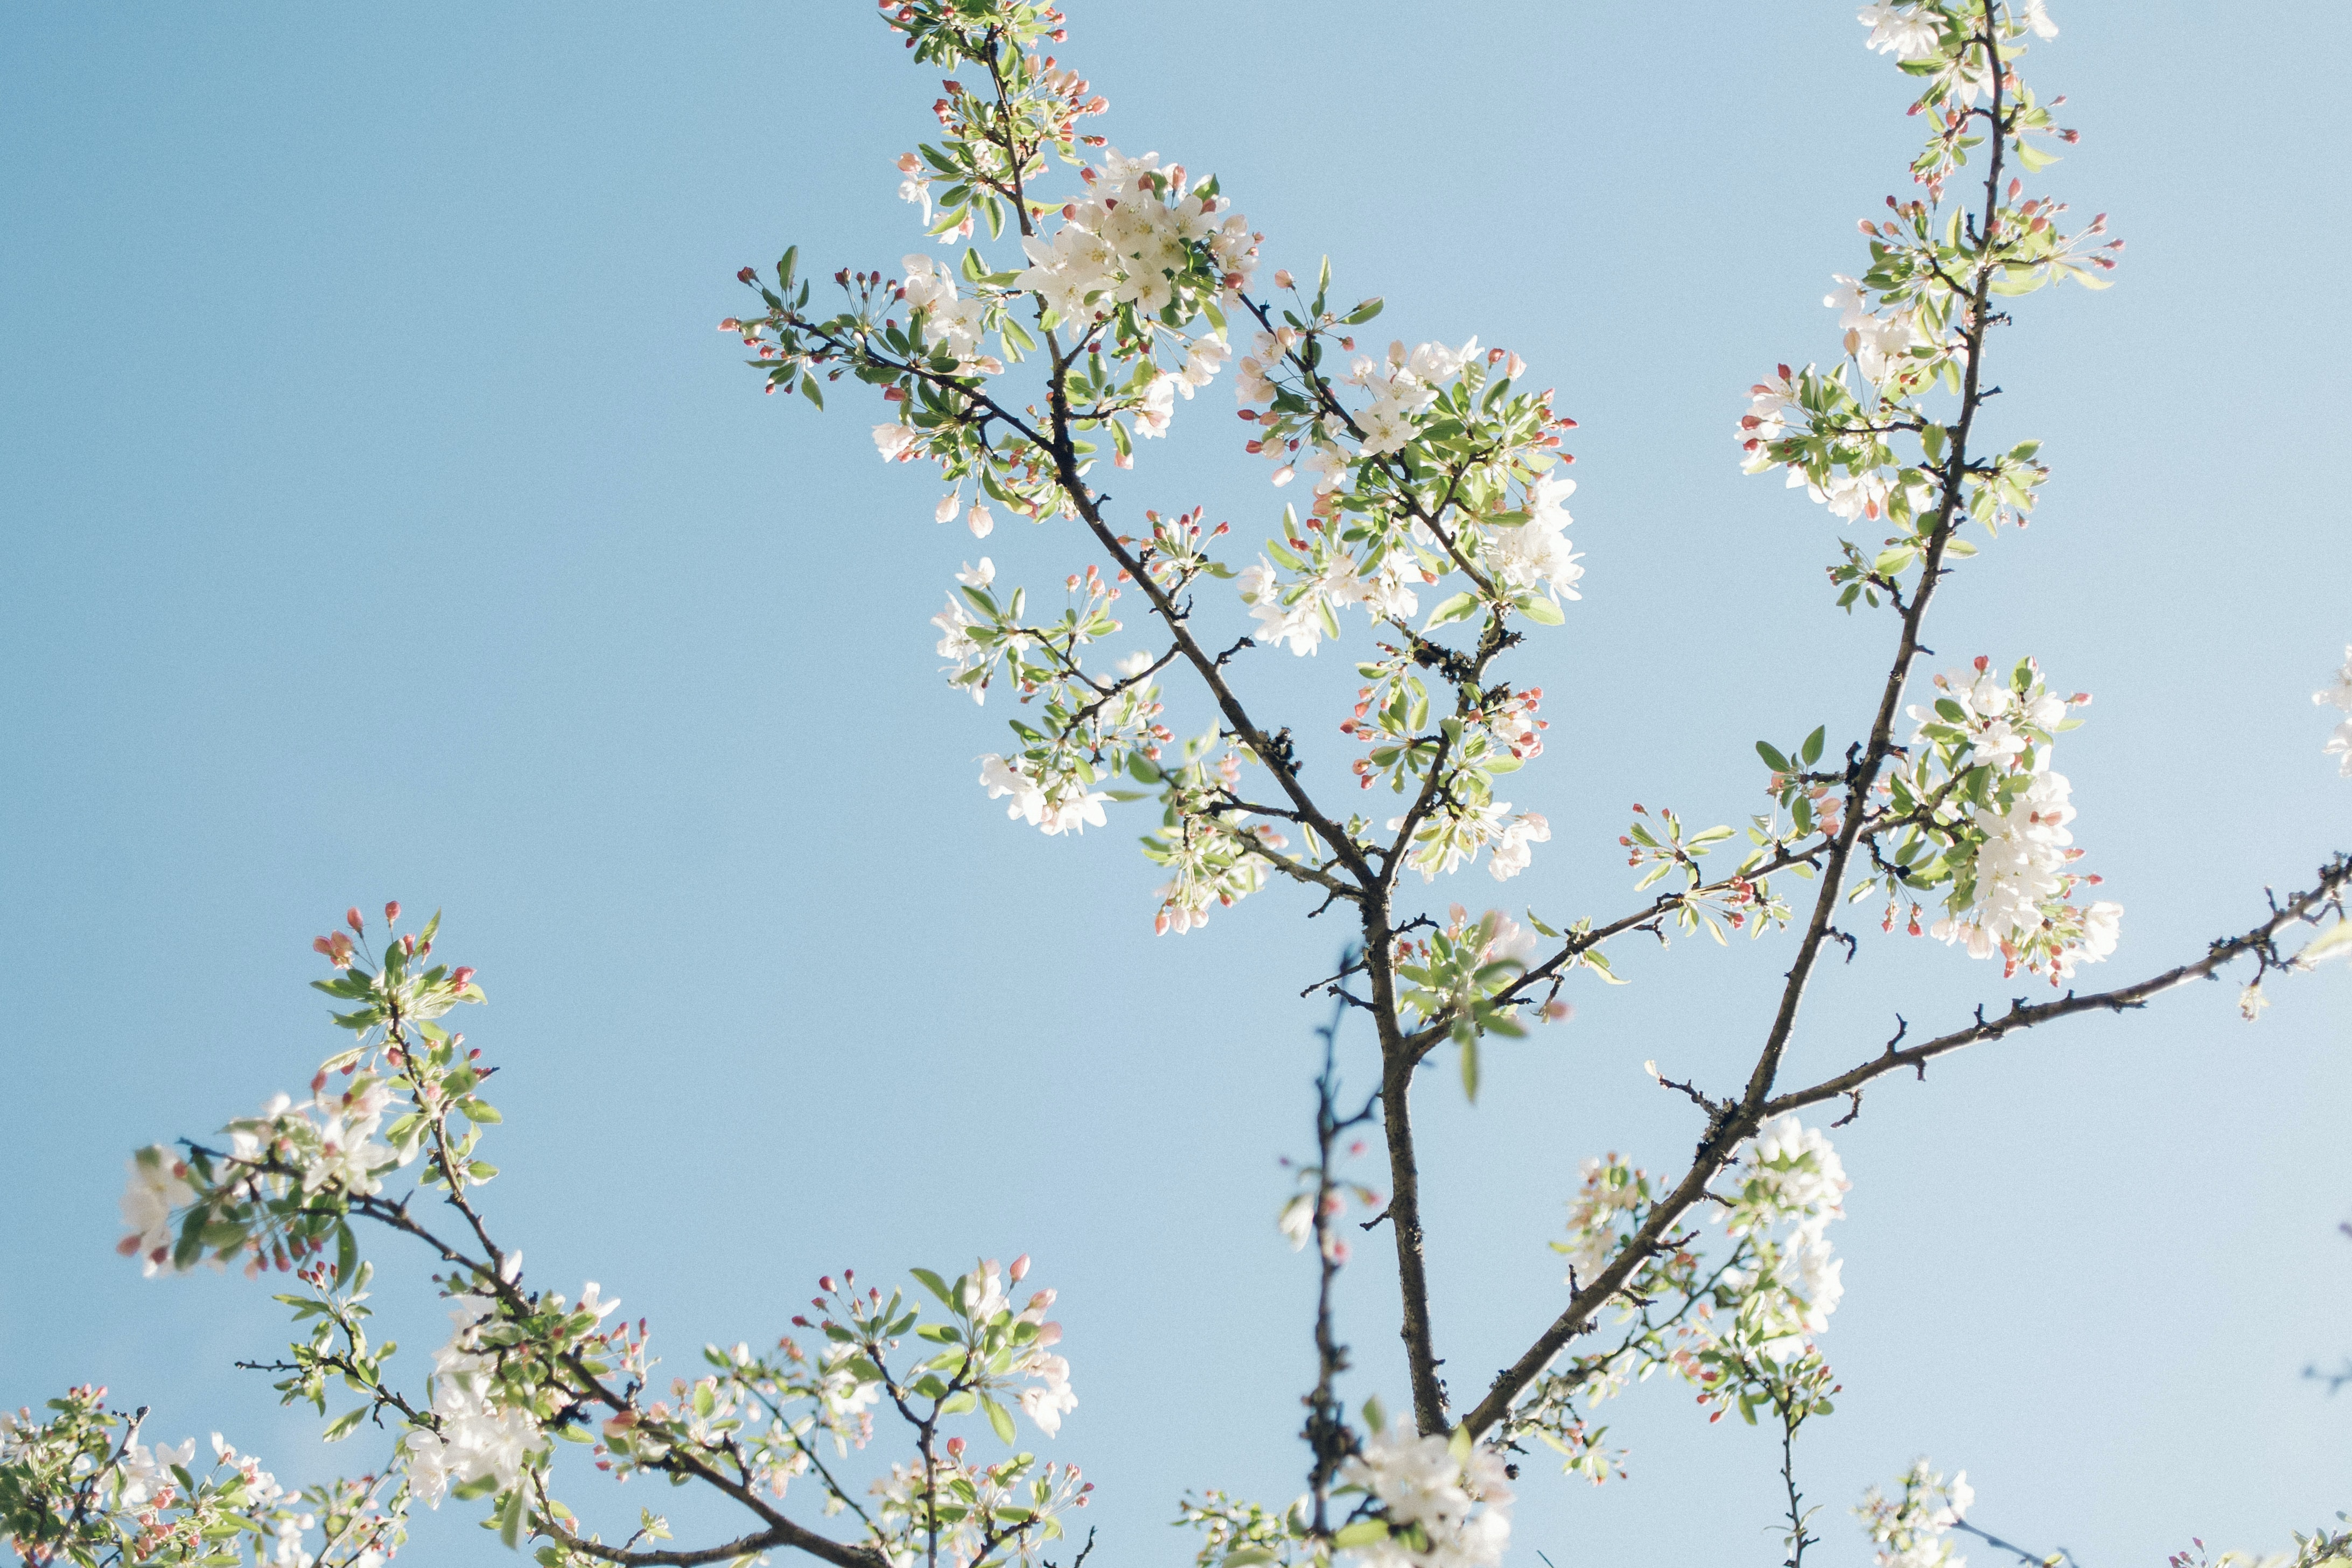 low angle photo of white petaled flowers in bloom